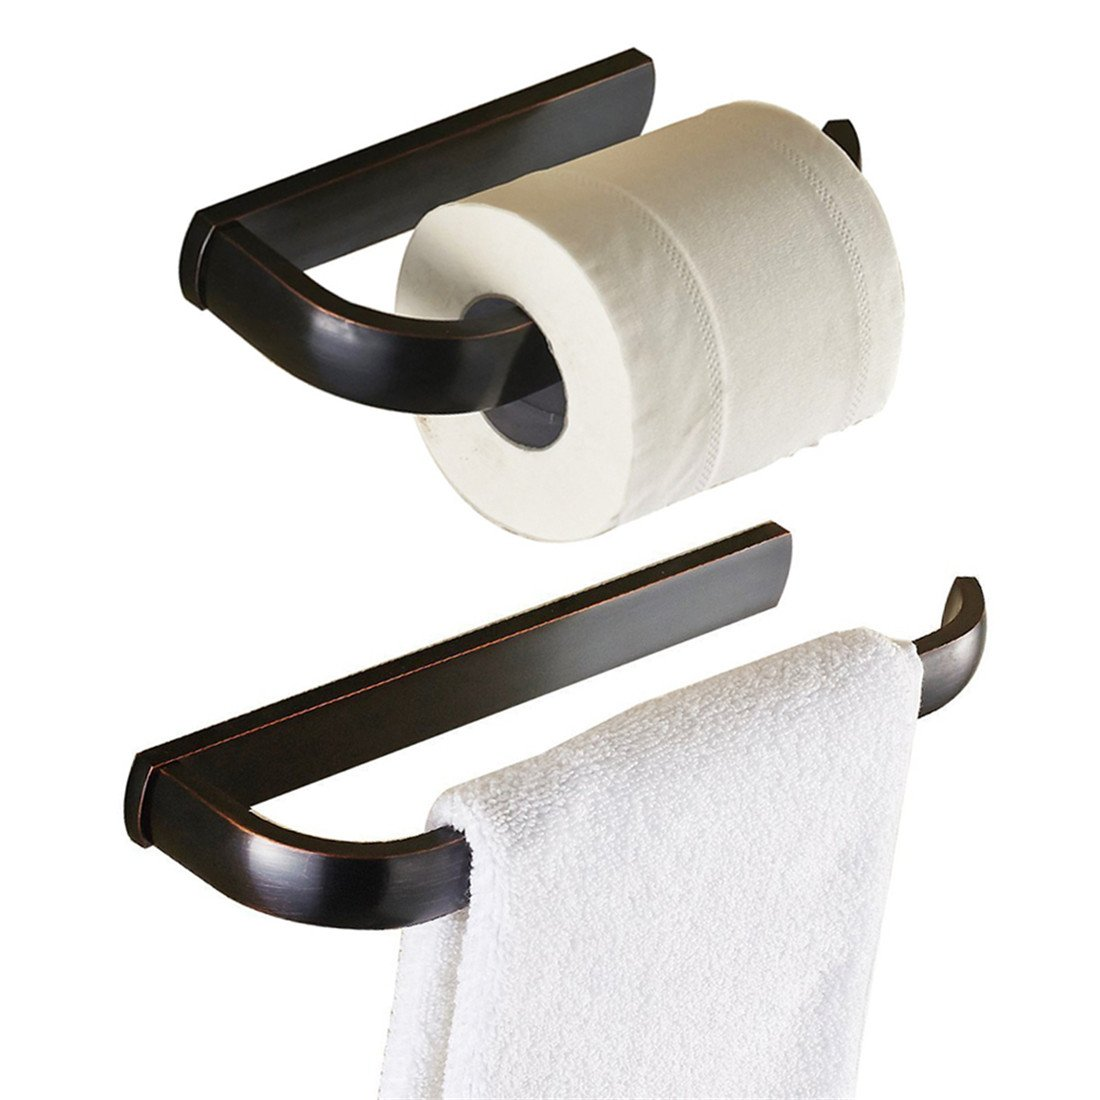 BigBig Home ORB Finish Brass Material Bathroom Hardware Set Half Open Toilet Tissue Paper Roll Holders Towel Ring Wall Mounted Convinient